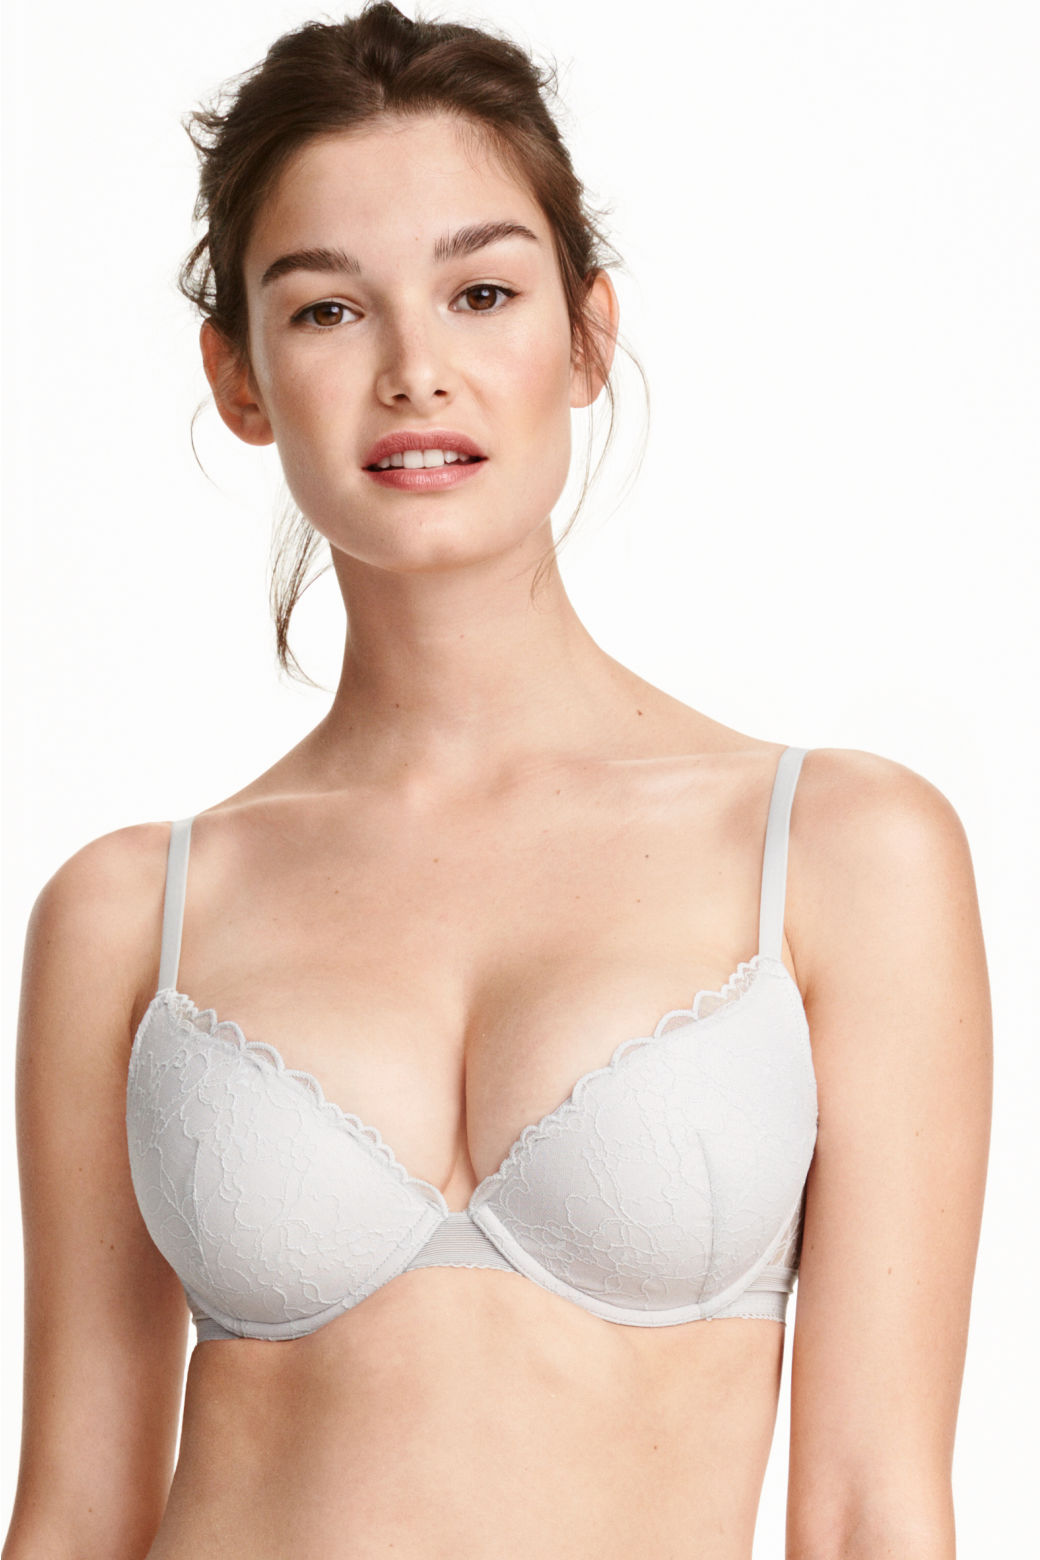 Grab a push-up bra from our collection and receive free shipping today. Bare Necessities is the only online intimates retailer to offer certified Bra Fit Experts to its customers! Call ext 4.